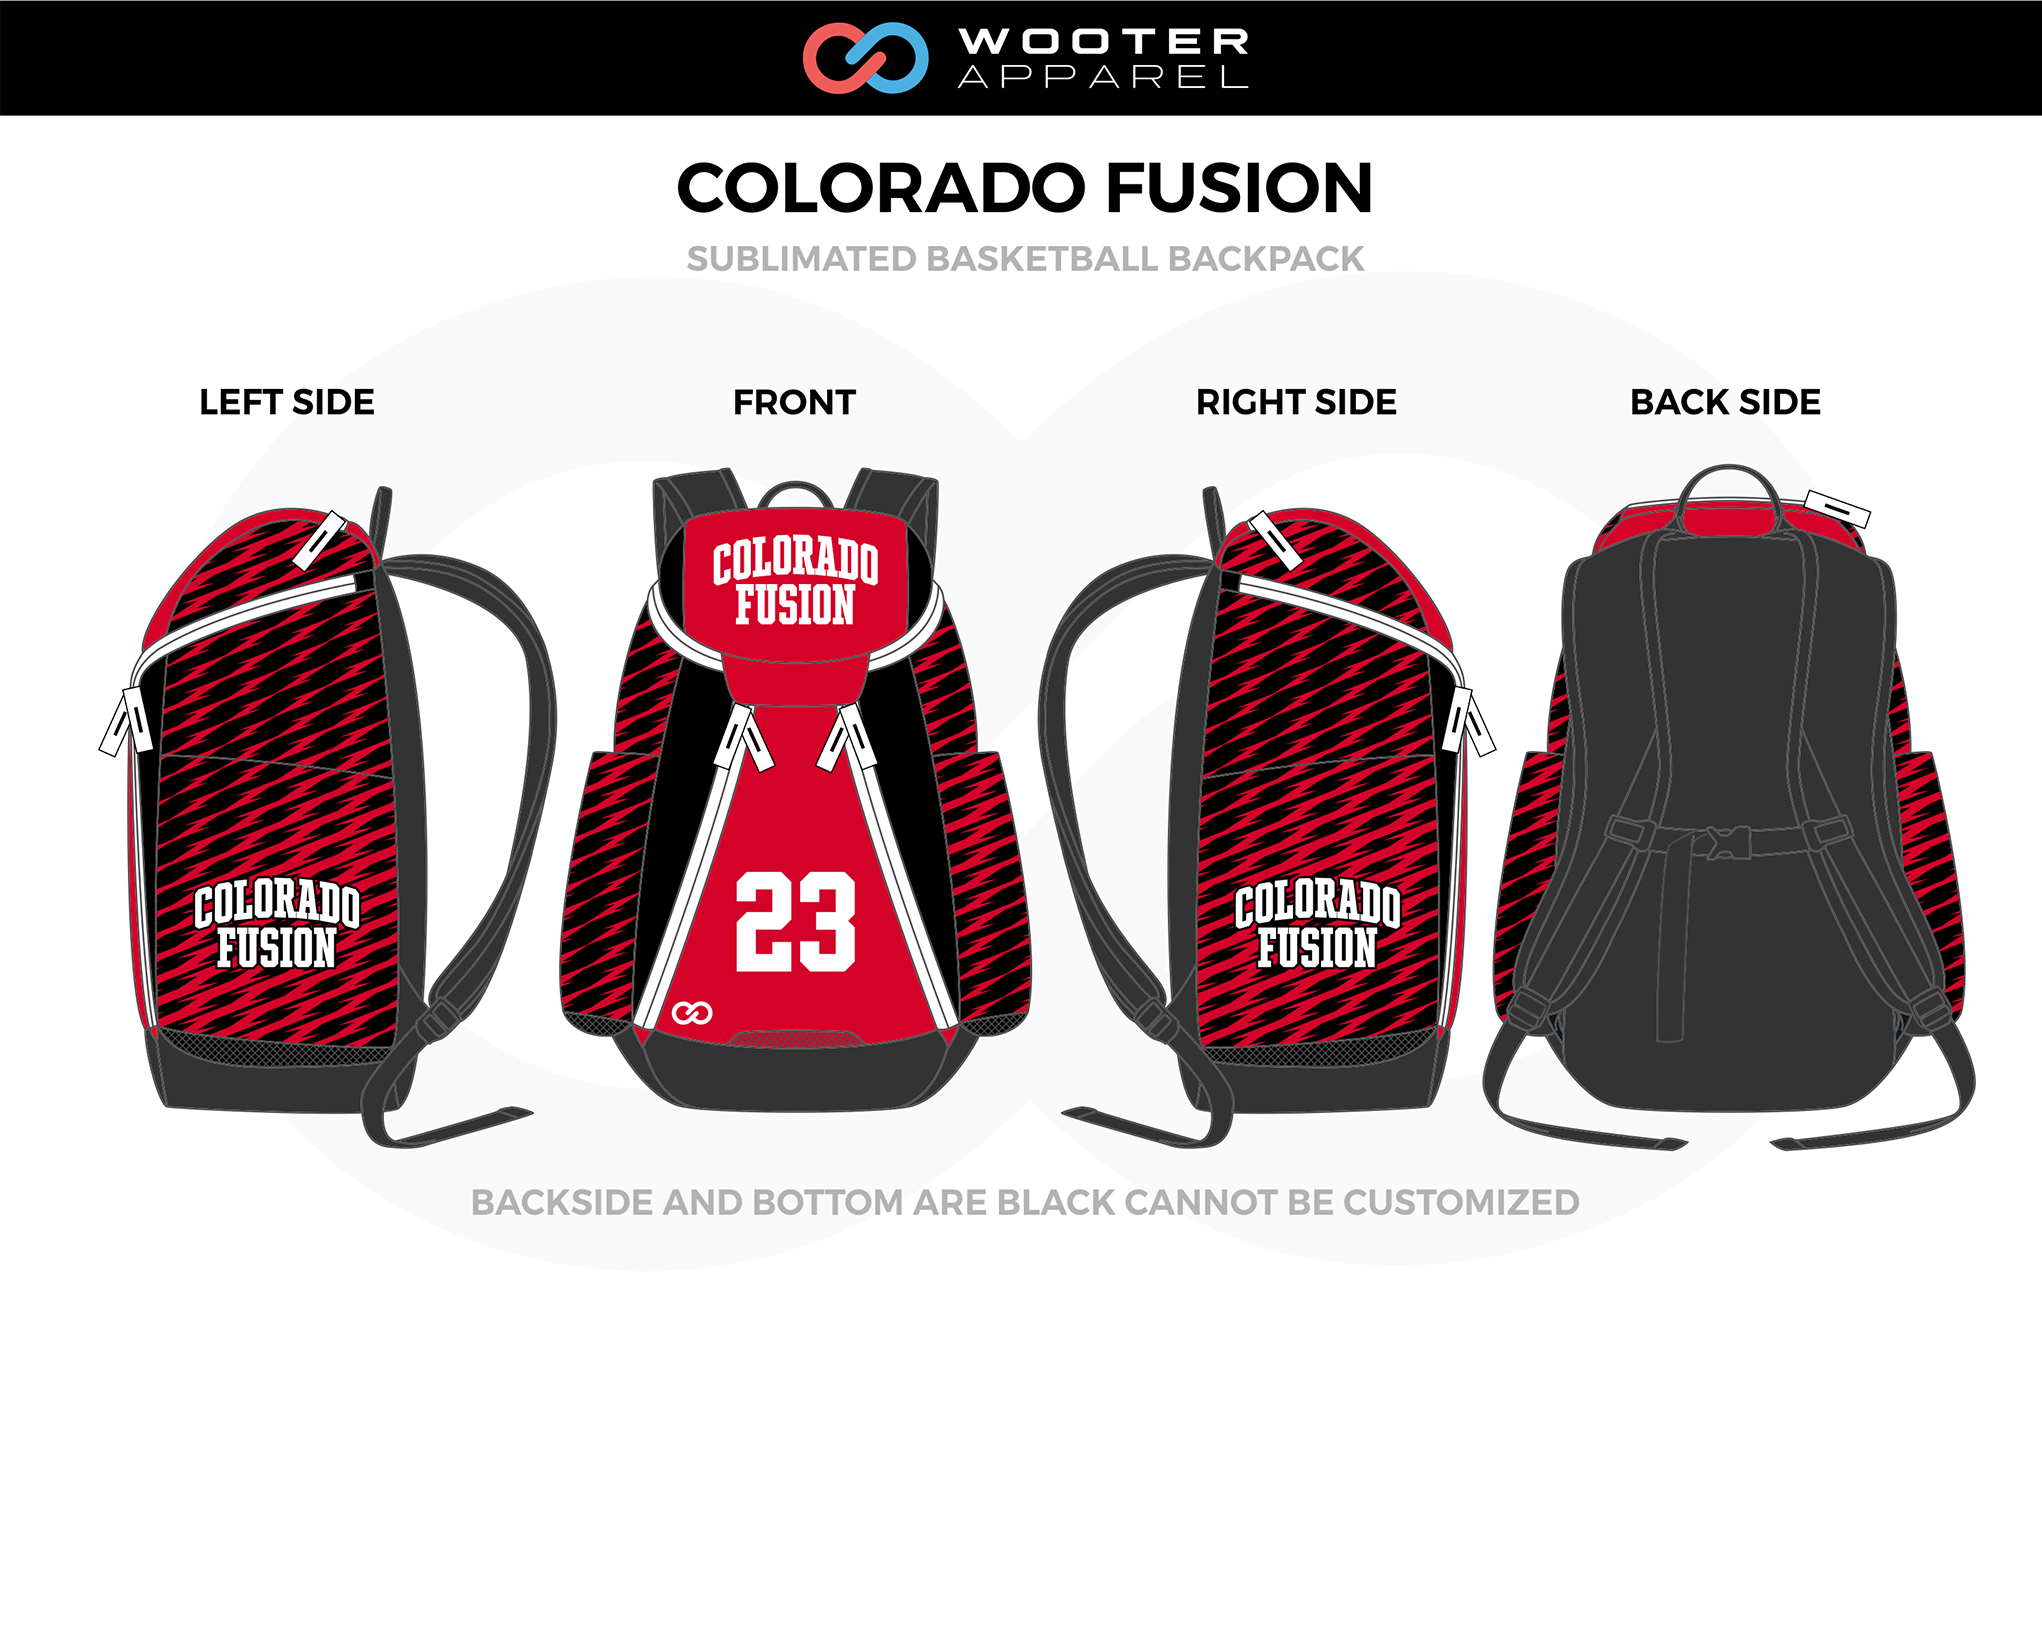 COLORADO FUSION Red Black White Basketball Backpack